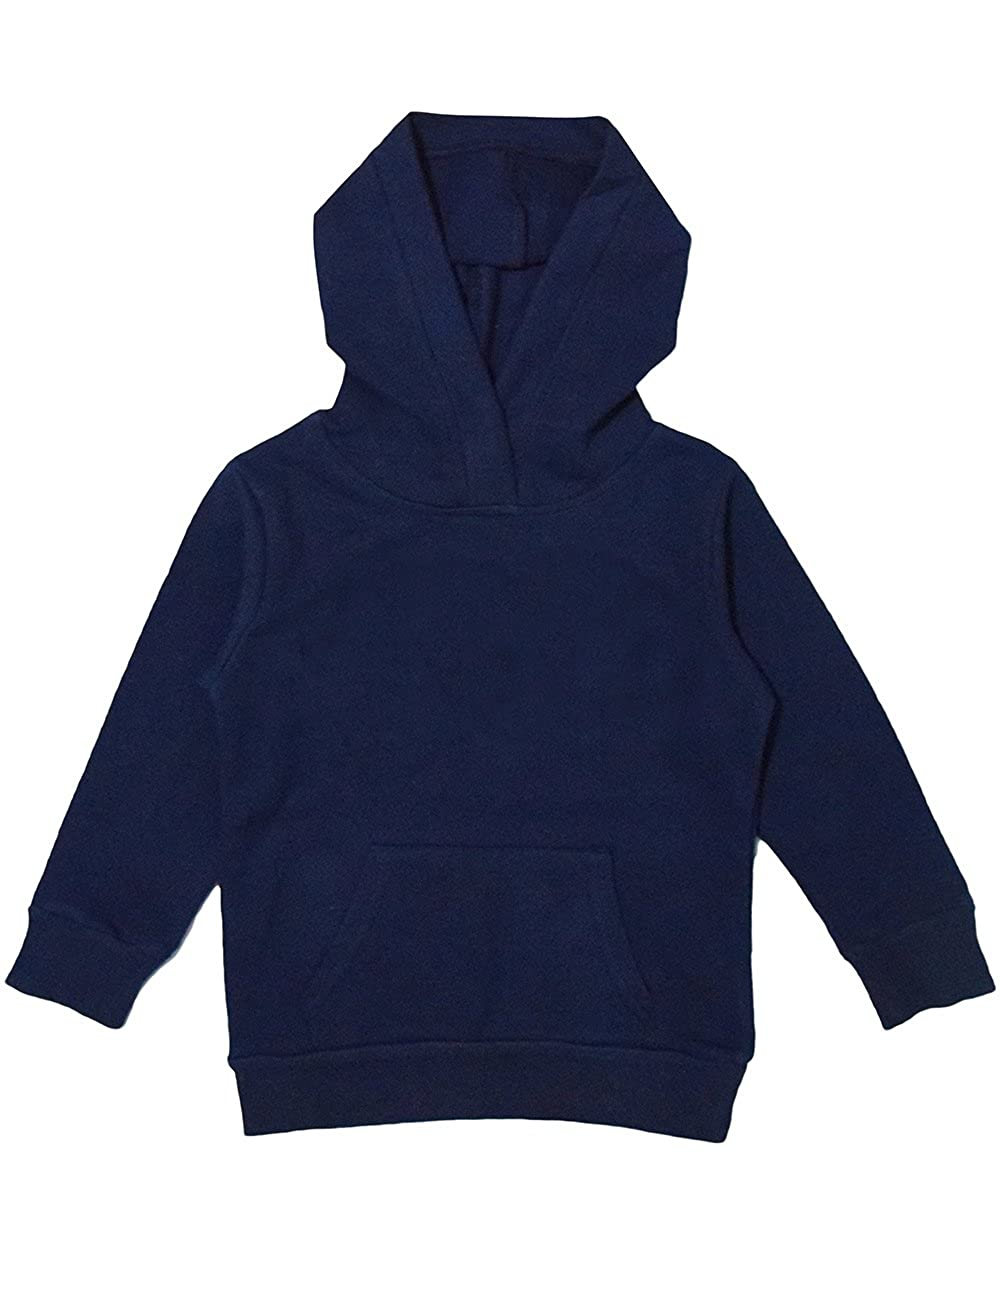 Spring& Gege Youth Solid Classic Hoodies Soft Hooded Sweatshirts for Children